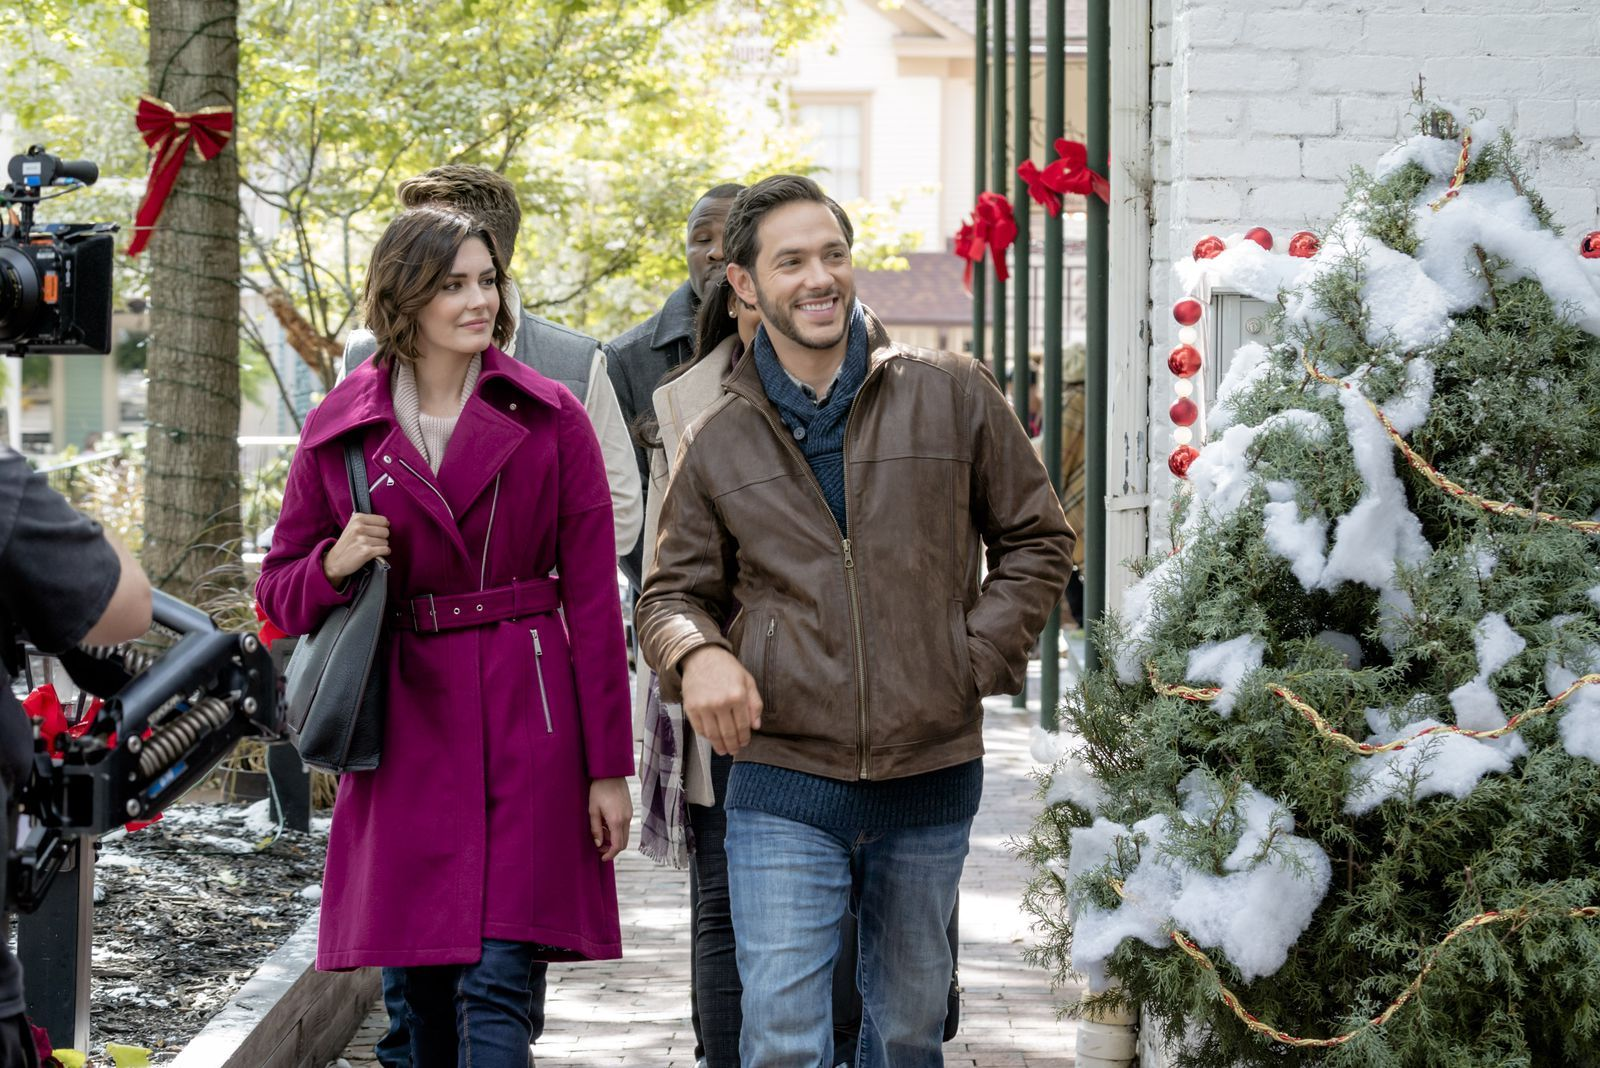 12 Hallmark Holiday Movie Towns You Can Visit in Real Life